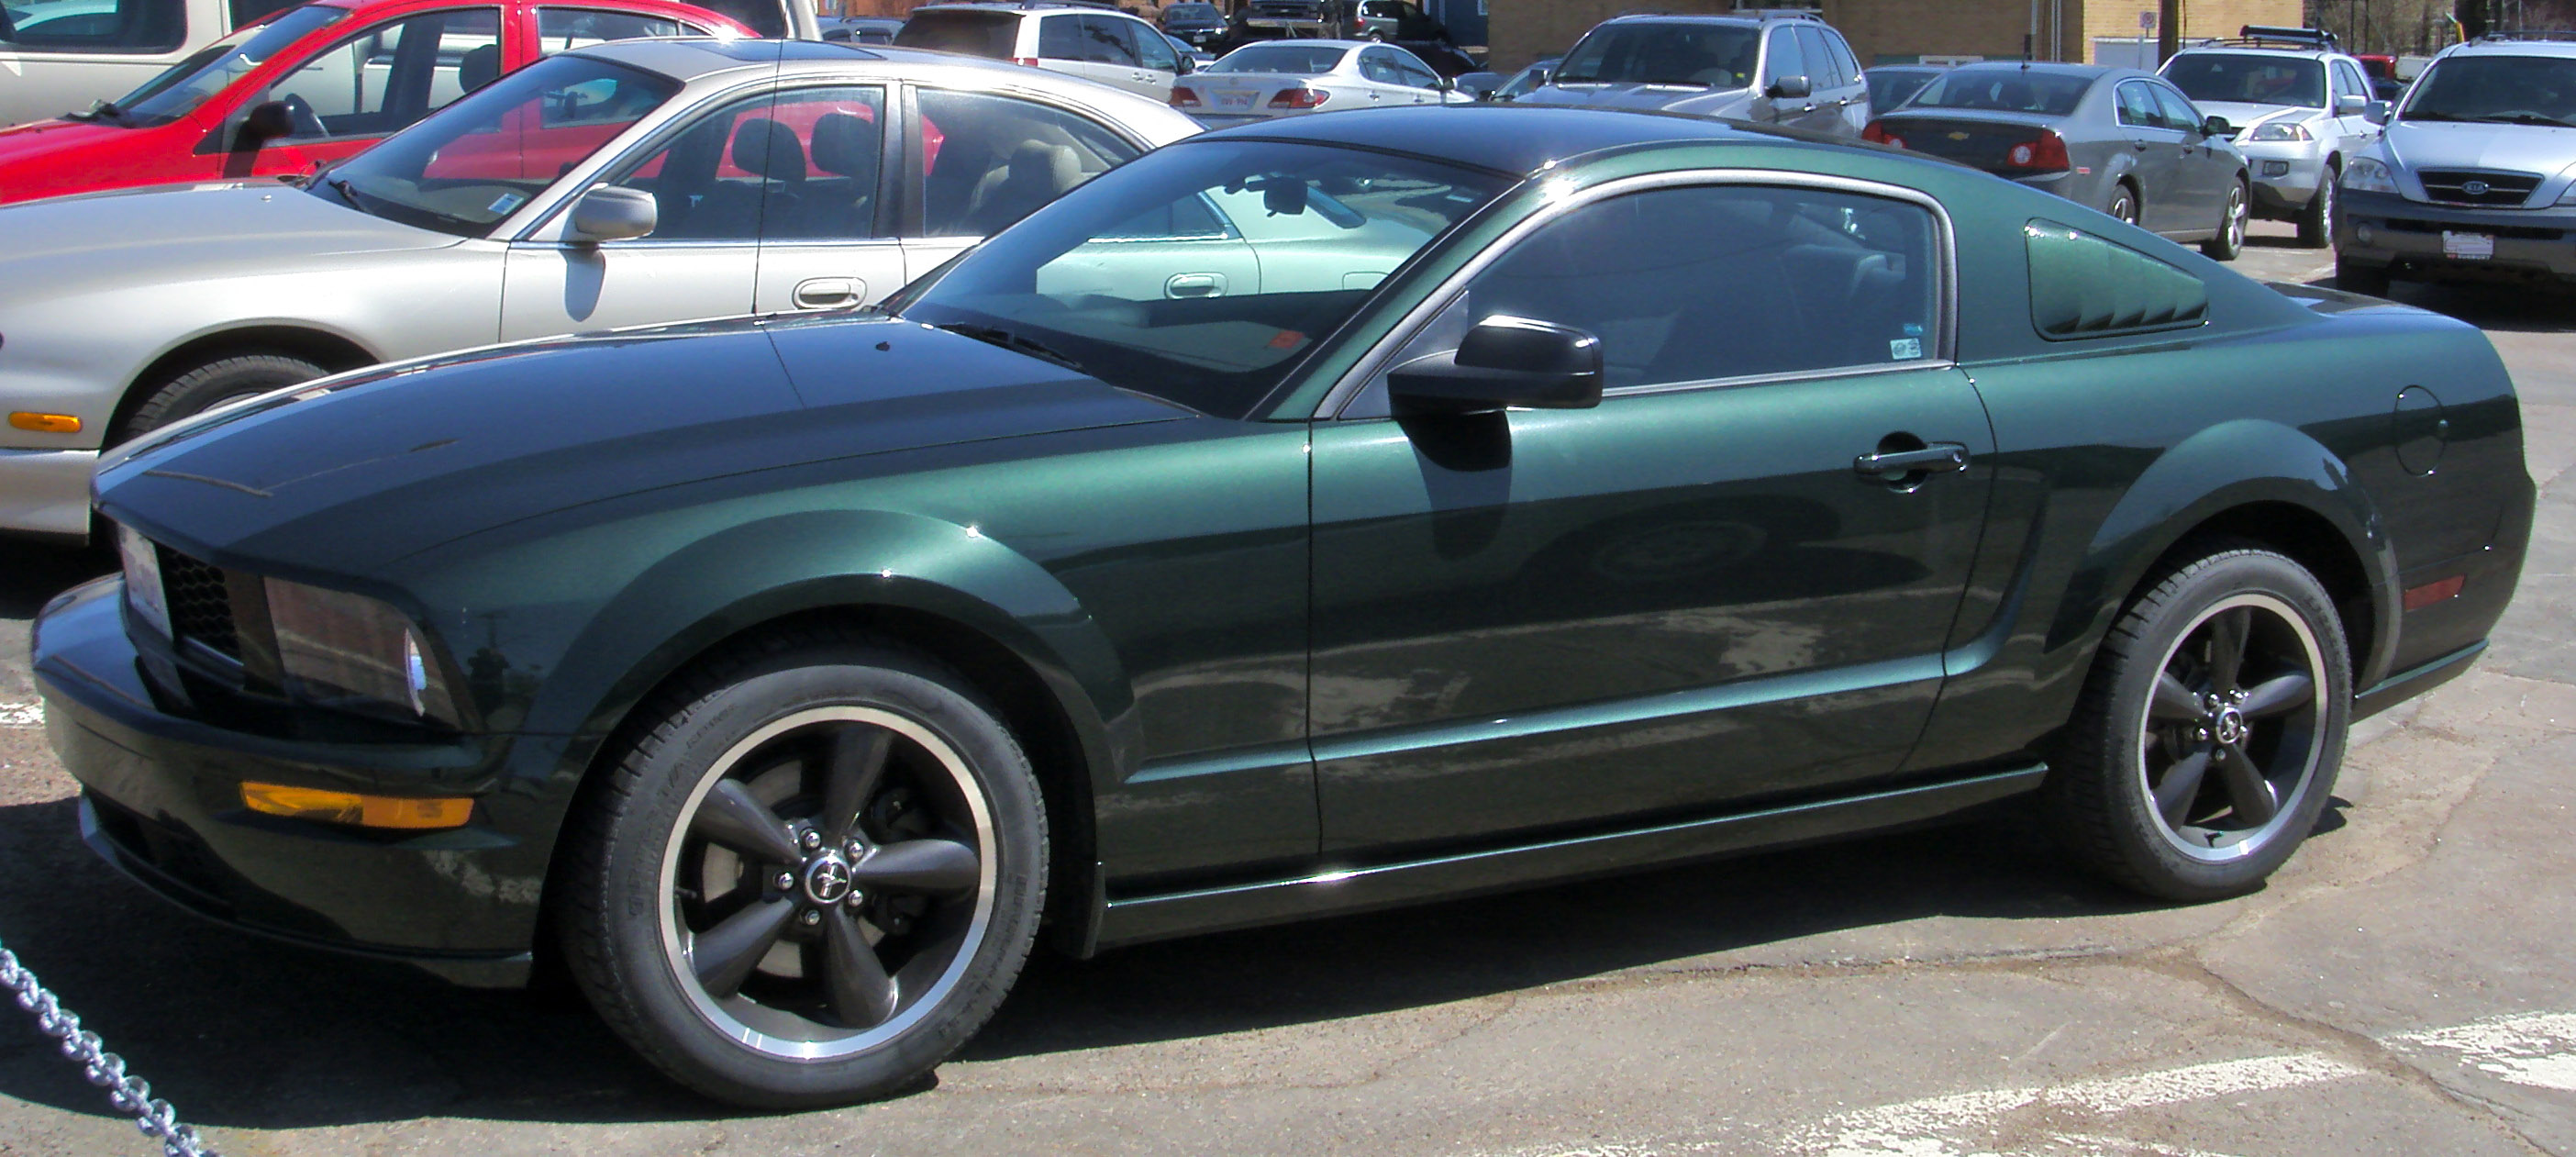 Ford Mustang #7